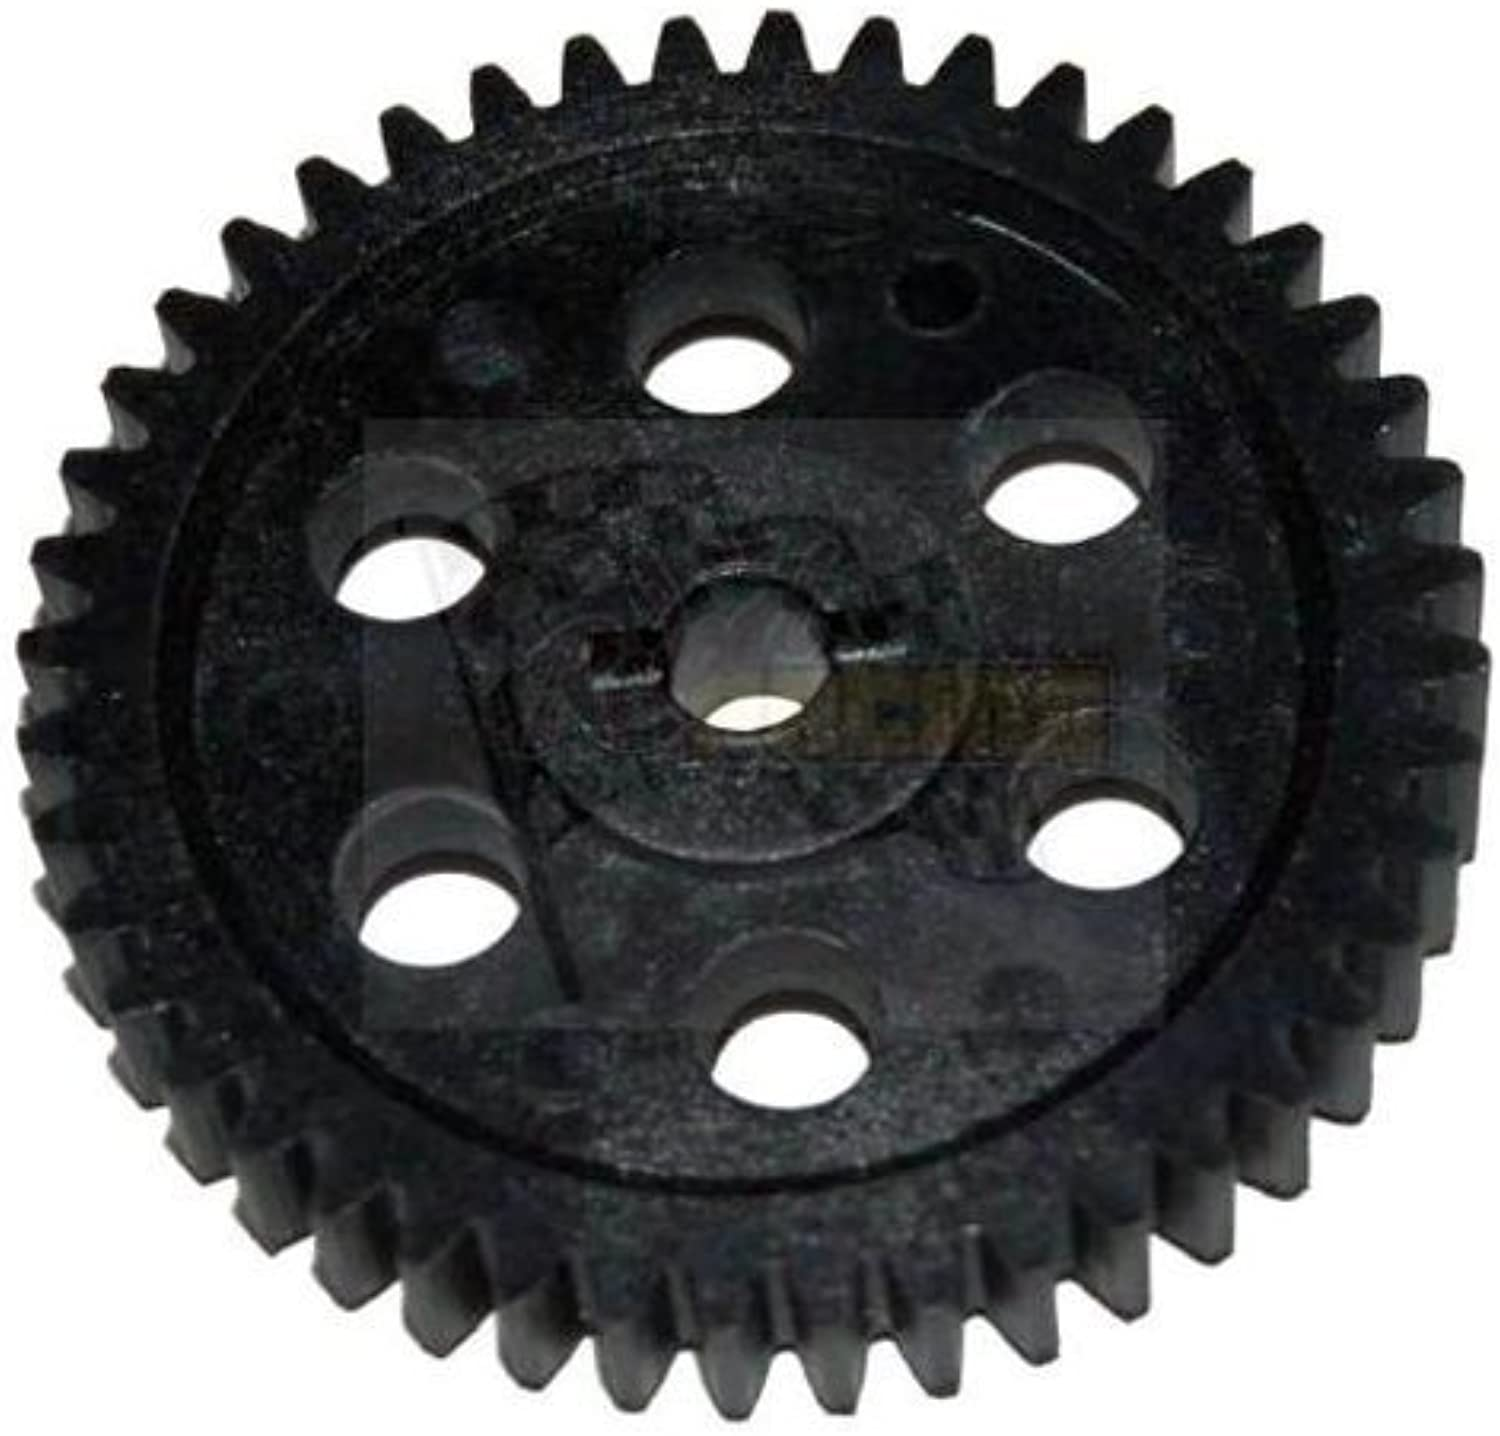 rotcat Racing 05112 44T Spur Gear by rotcat Racing